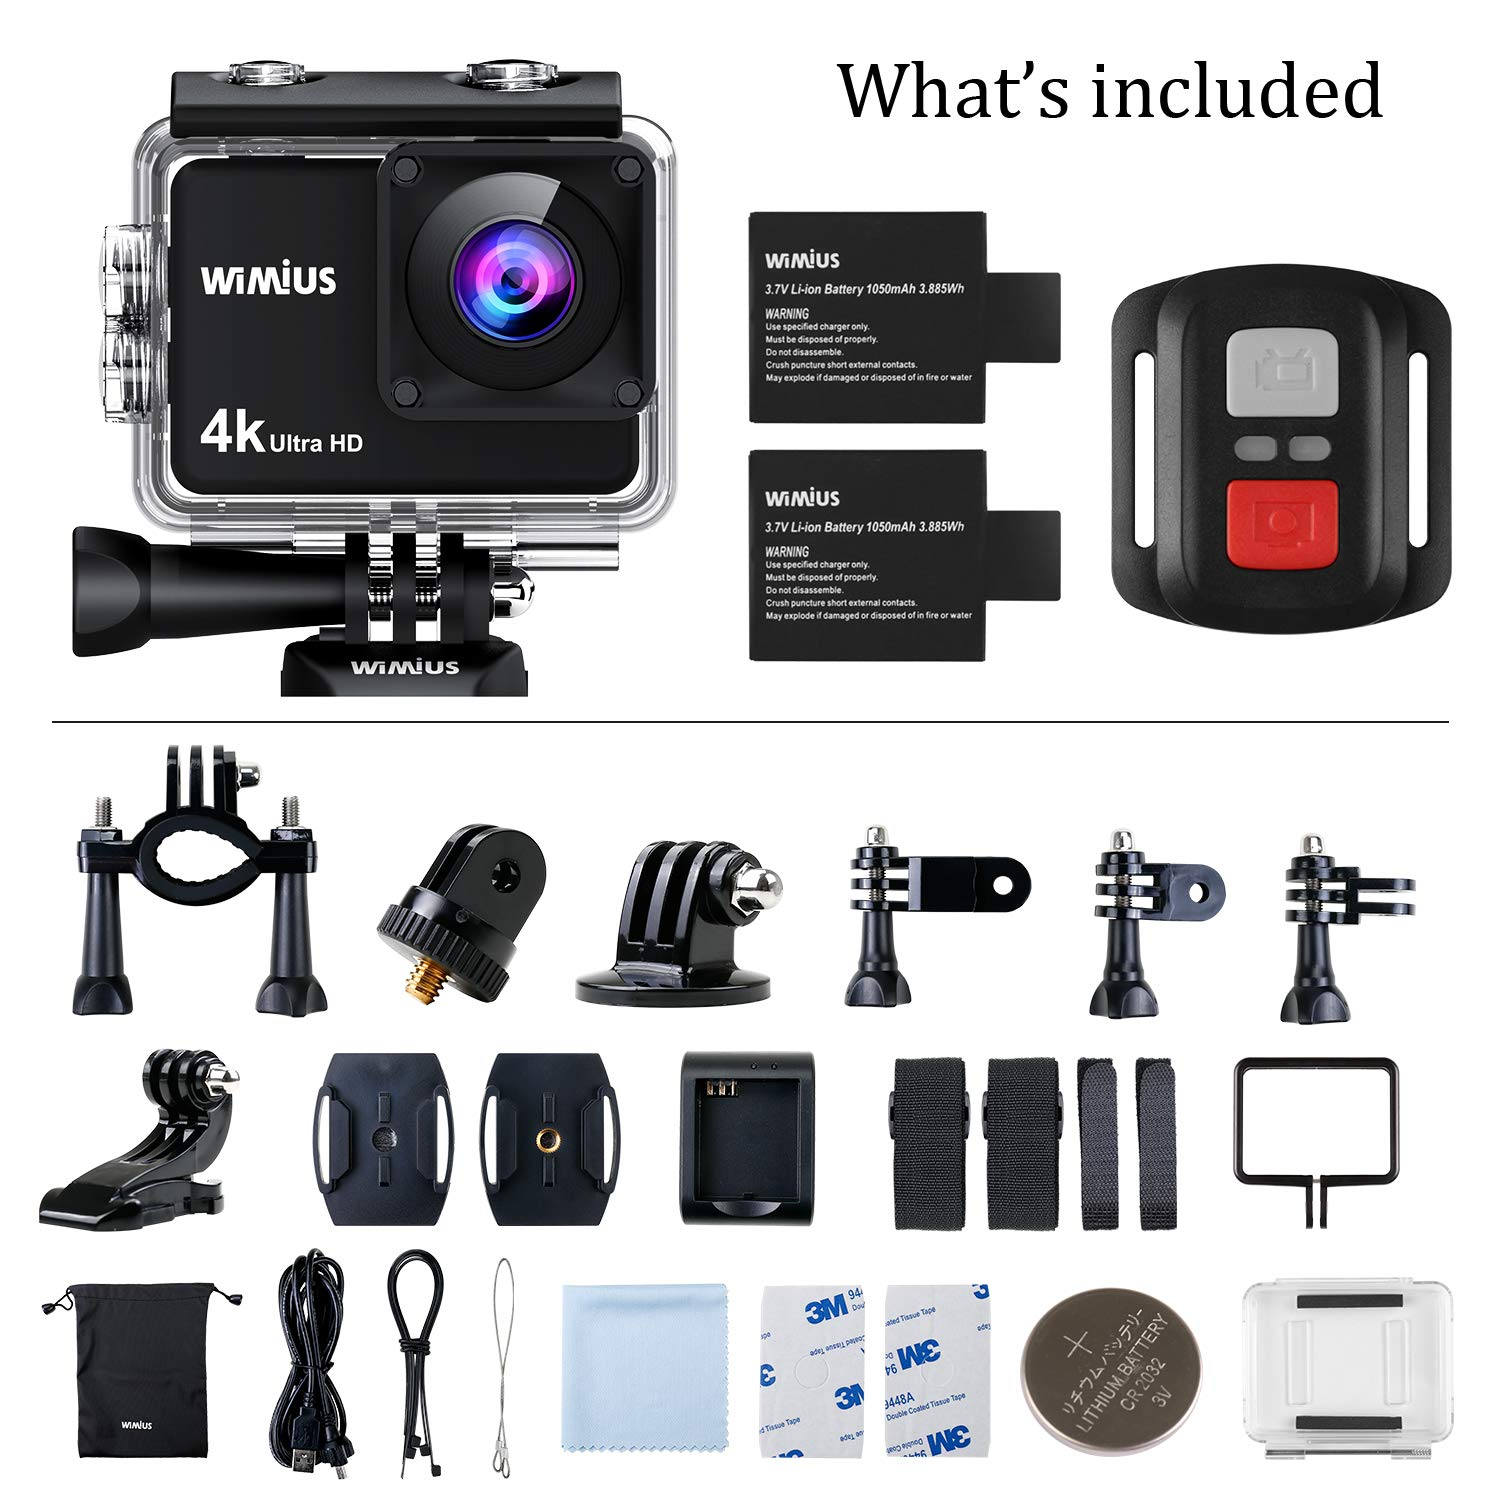 WiMiUS 4K Action Camera 2 Inch Touch Screen 16MP WiFi Sports Camera 30M Underwater Waterproof Camcorder 170 Degree Wide Angle Lens with 2 Rechargeable 1050mAh Batteries and Mounting Accessories by WiMiUS (Image #7)